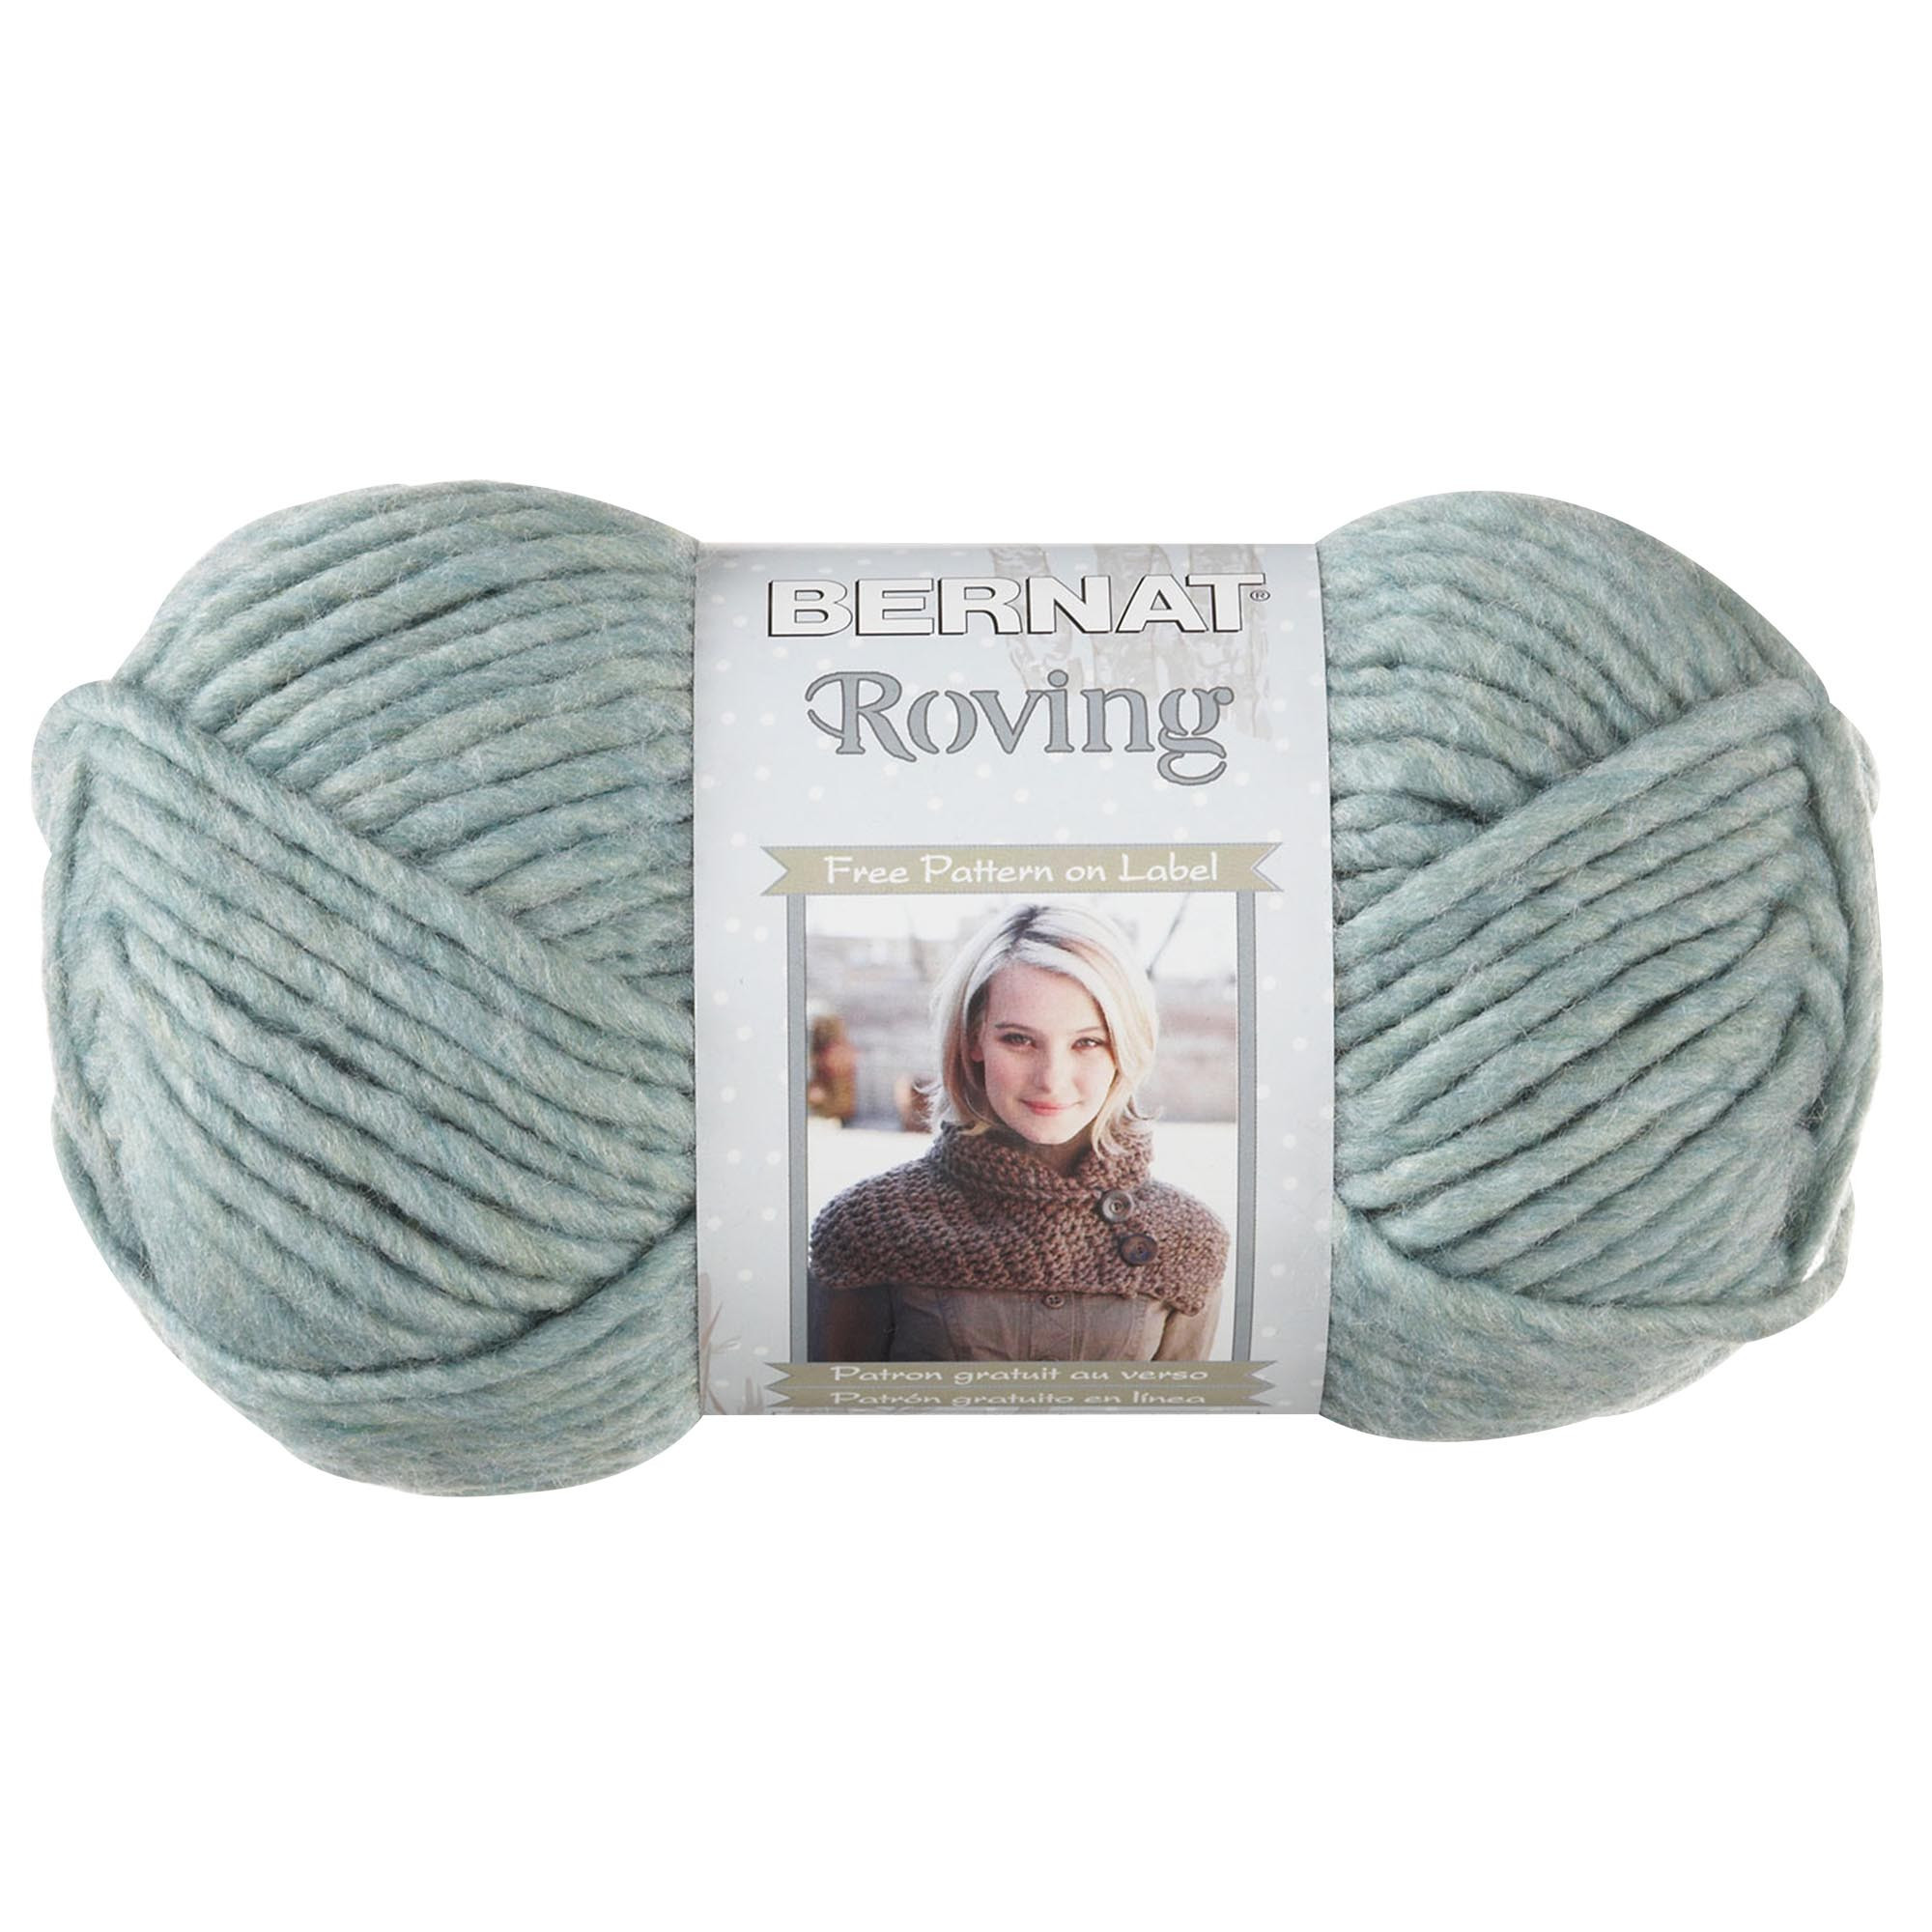 Beautiful Bernat Roving Knitting Yarn 100g Bernat Roving Yarn Of Gorgeous 50 Models Bernat Roving Yarn